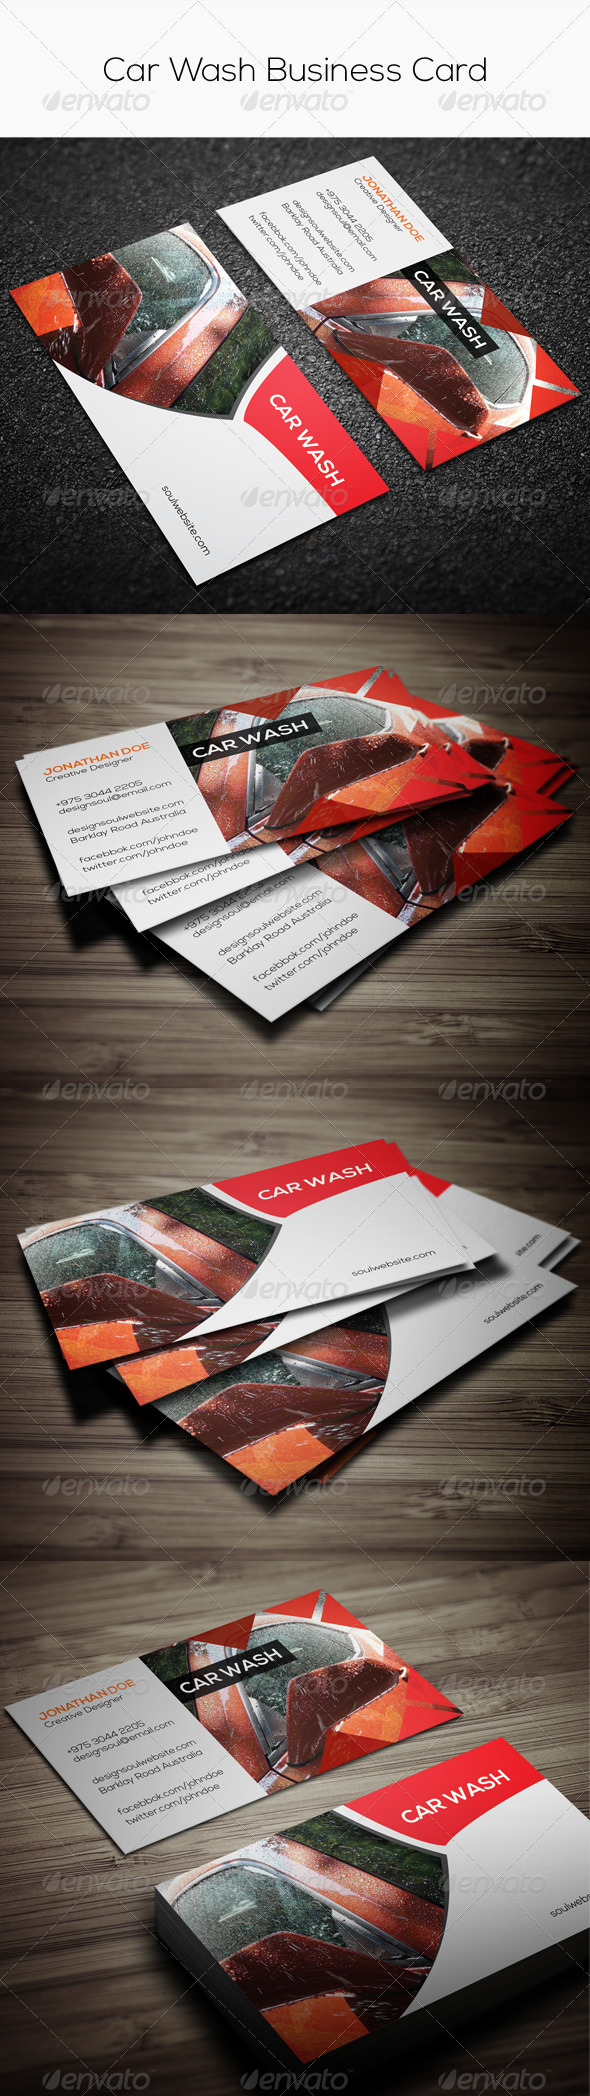 GraphicRiver Car Wash Business Card 7737869